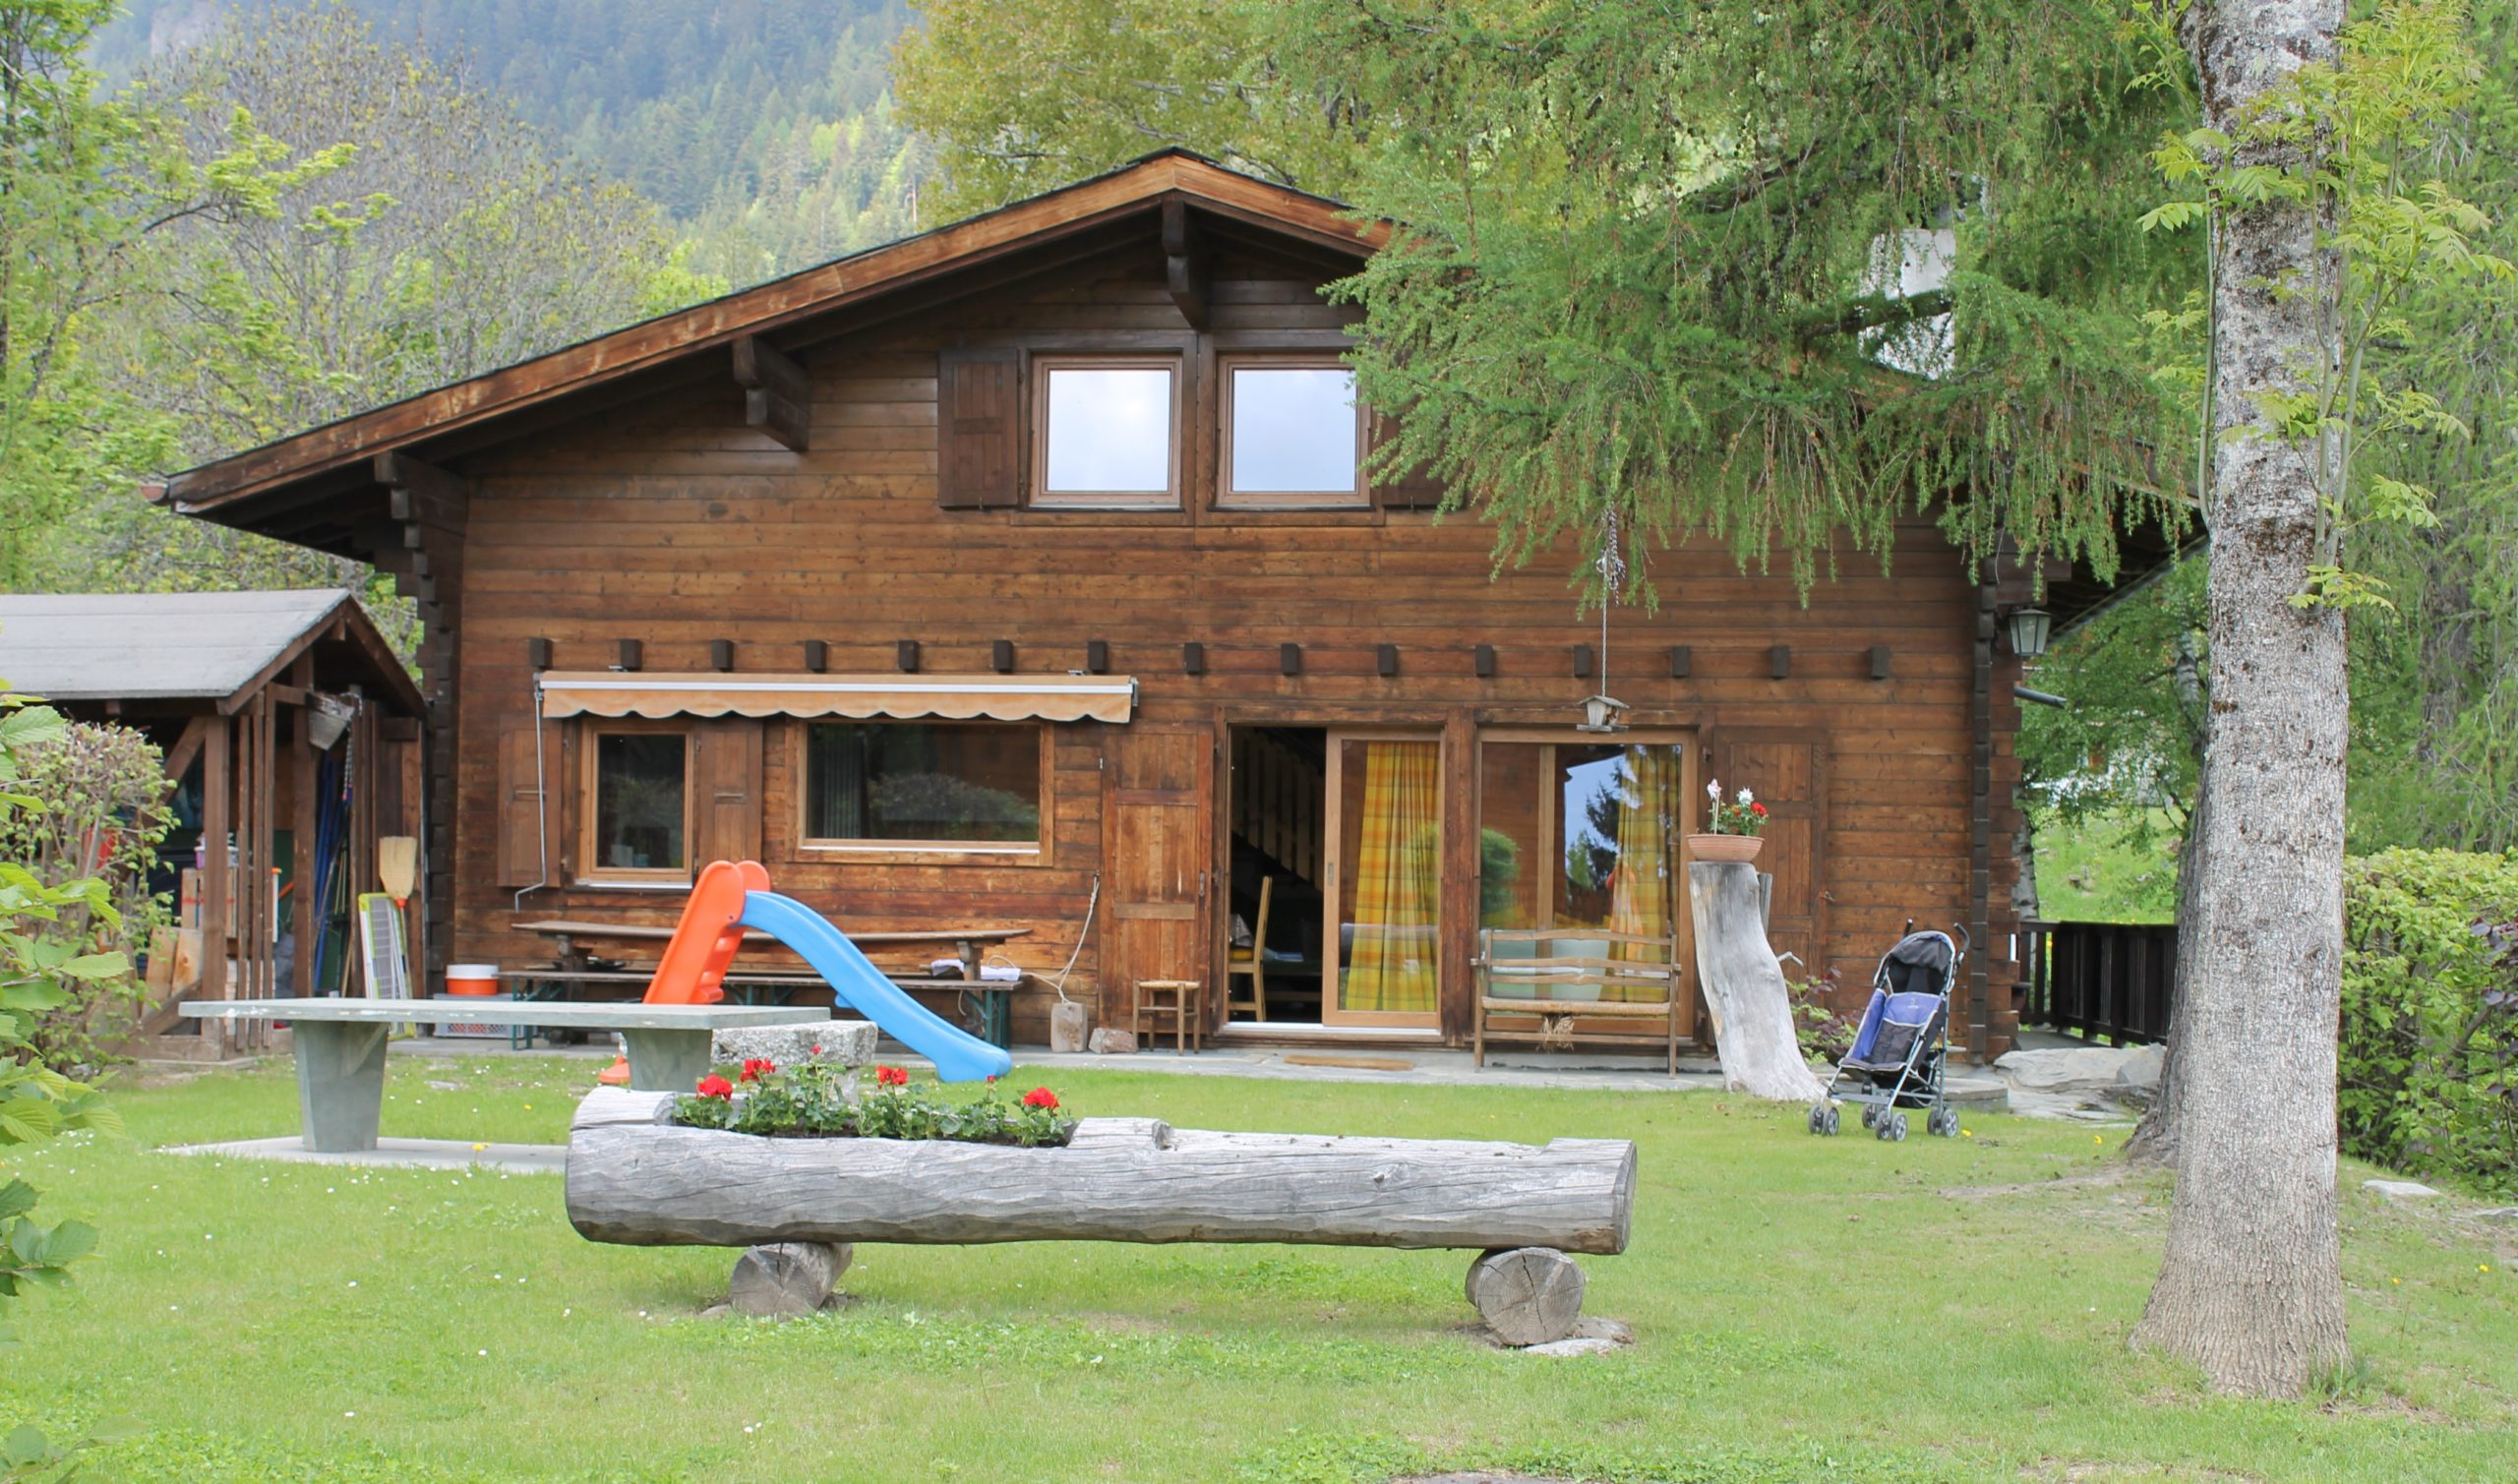 Family Thurre – Chalet Luy d'Août